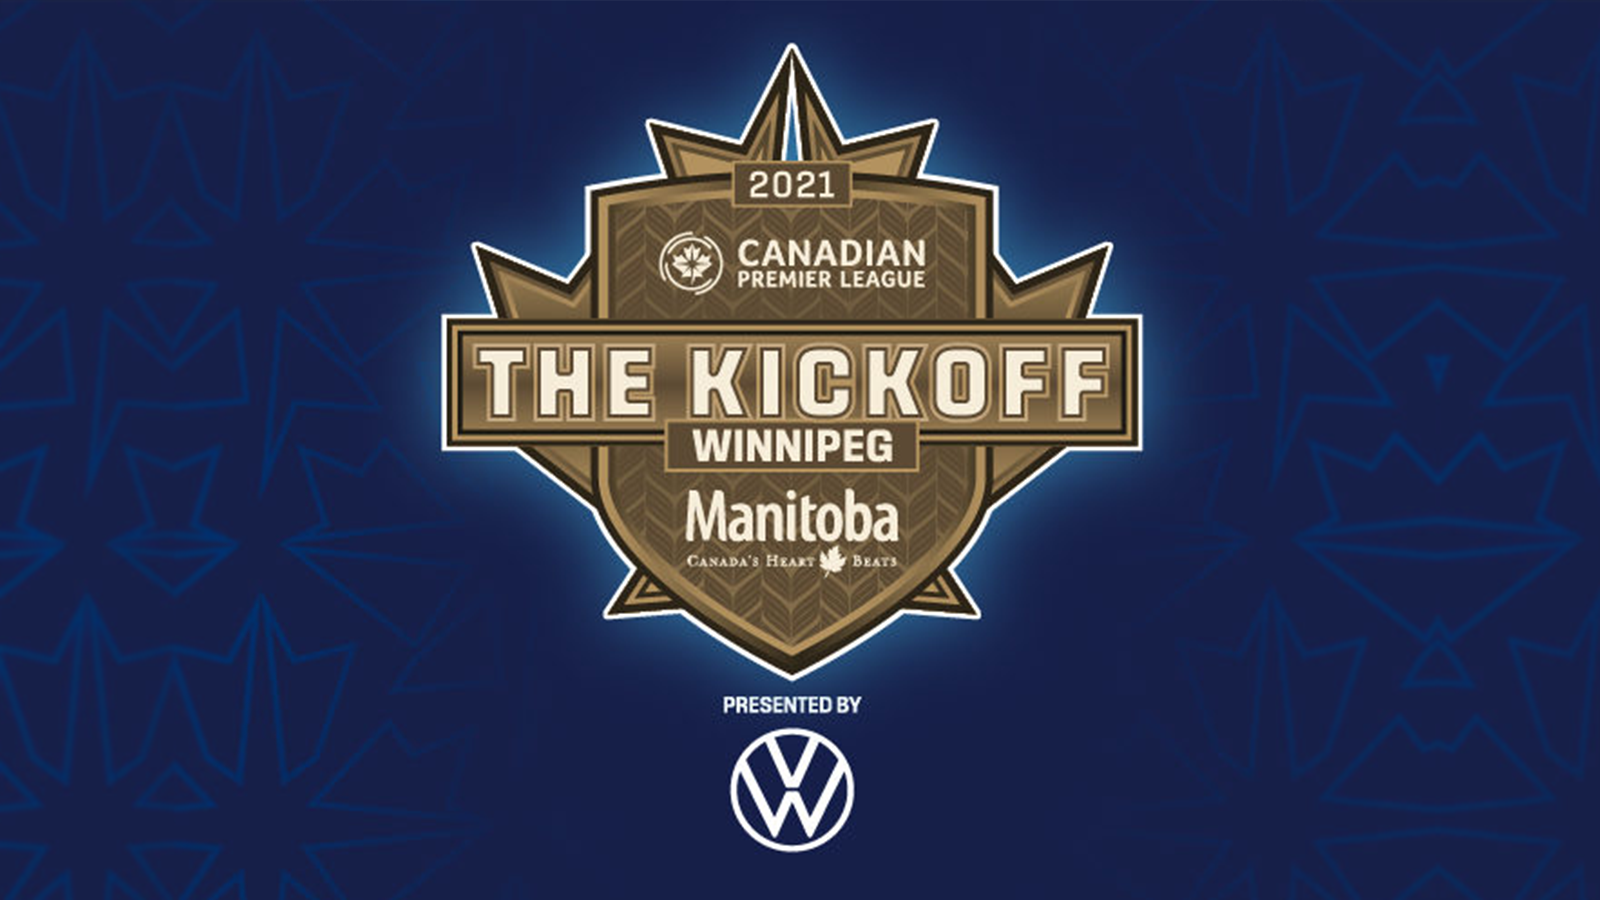 CPL's The Kickoff – the single site start of the 2021 CPL season.